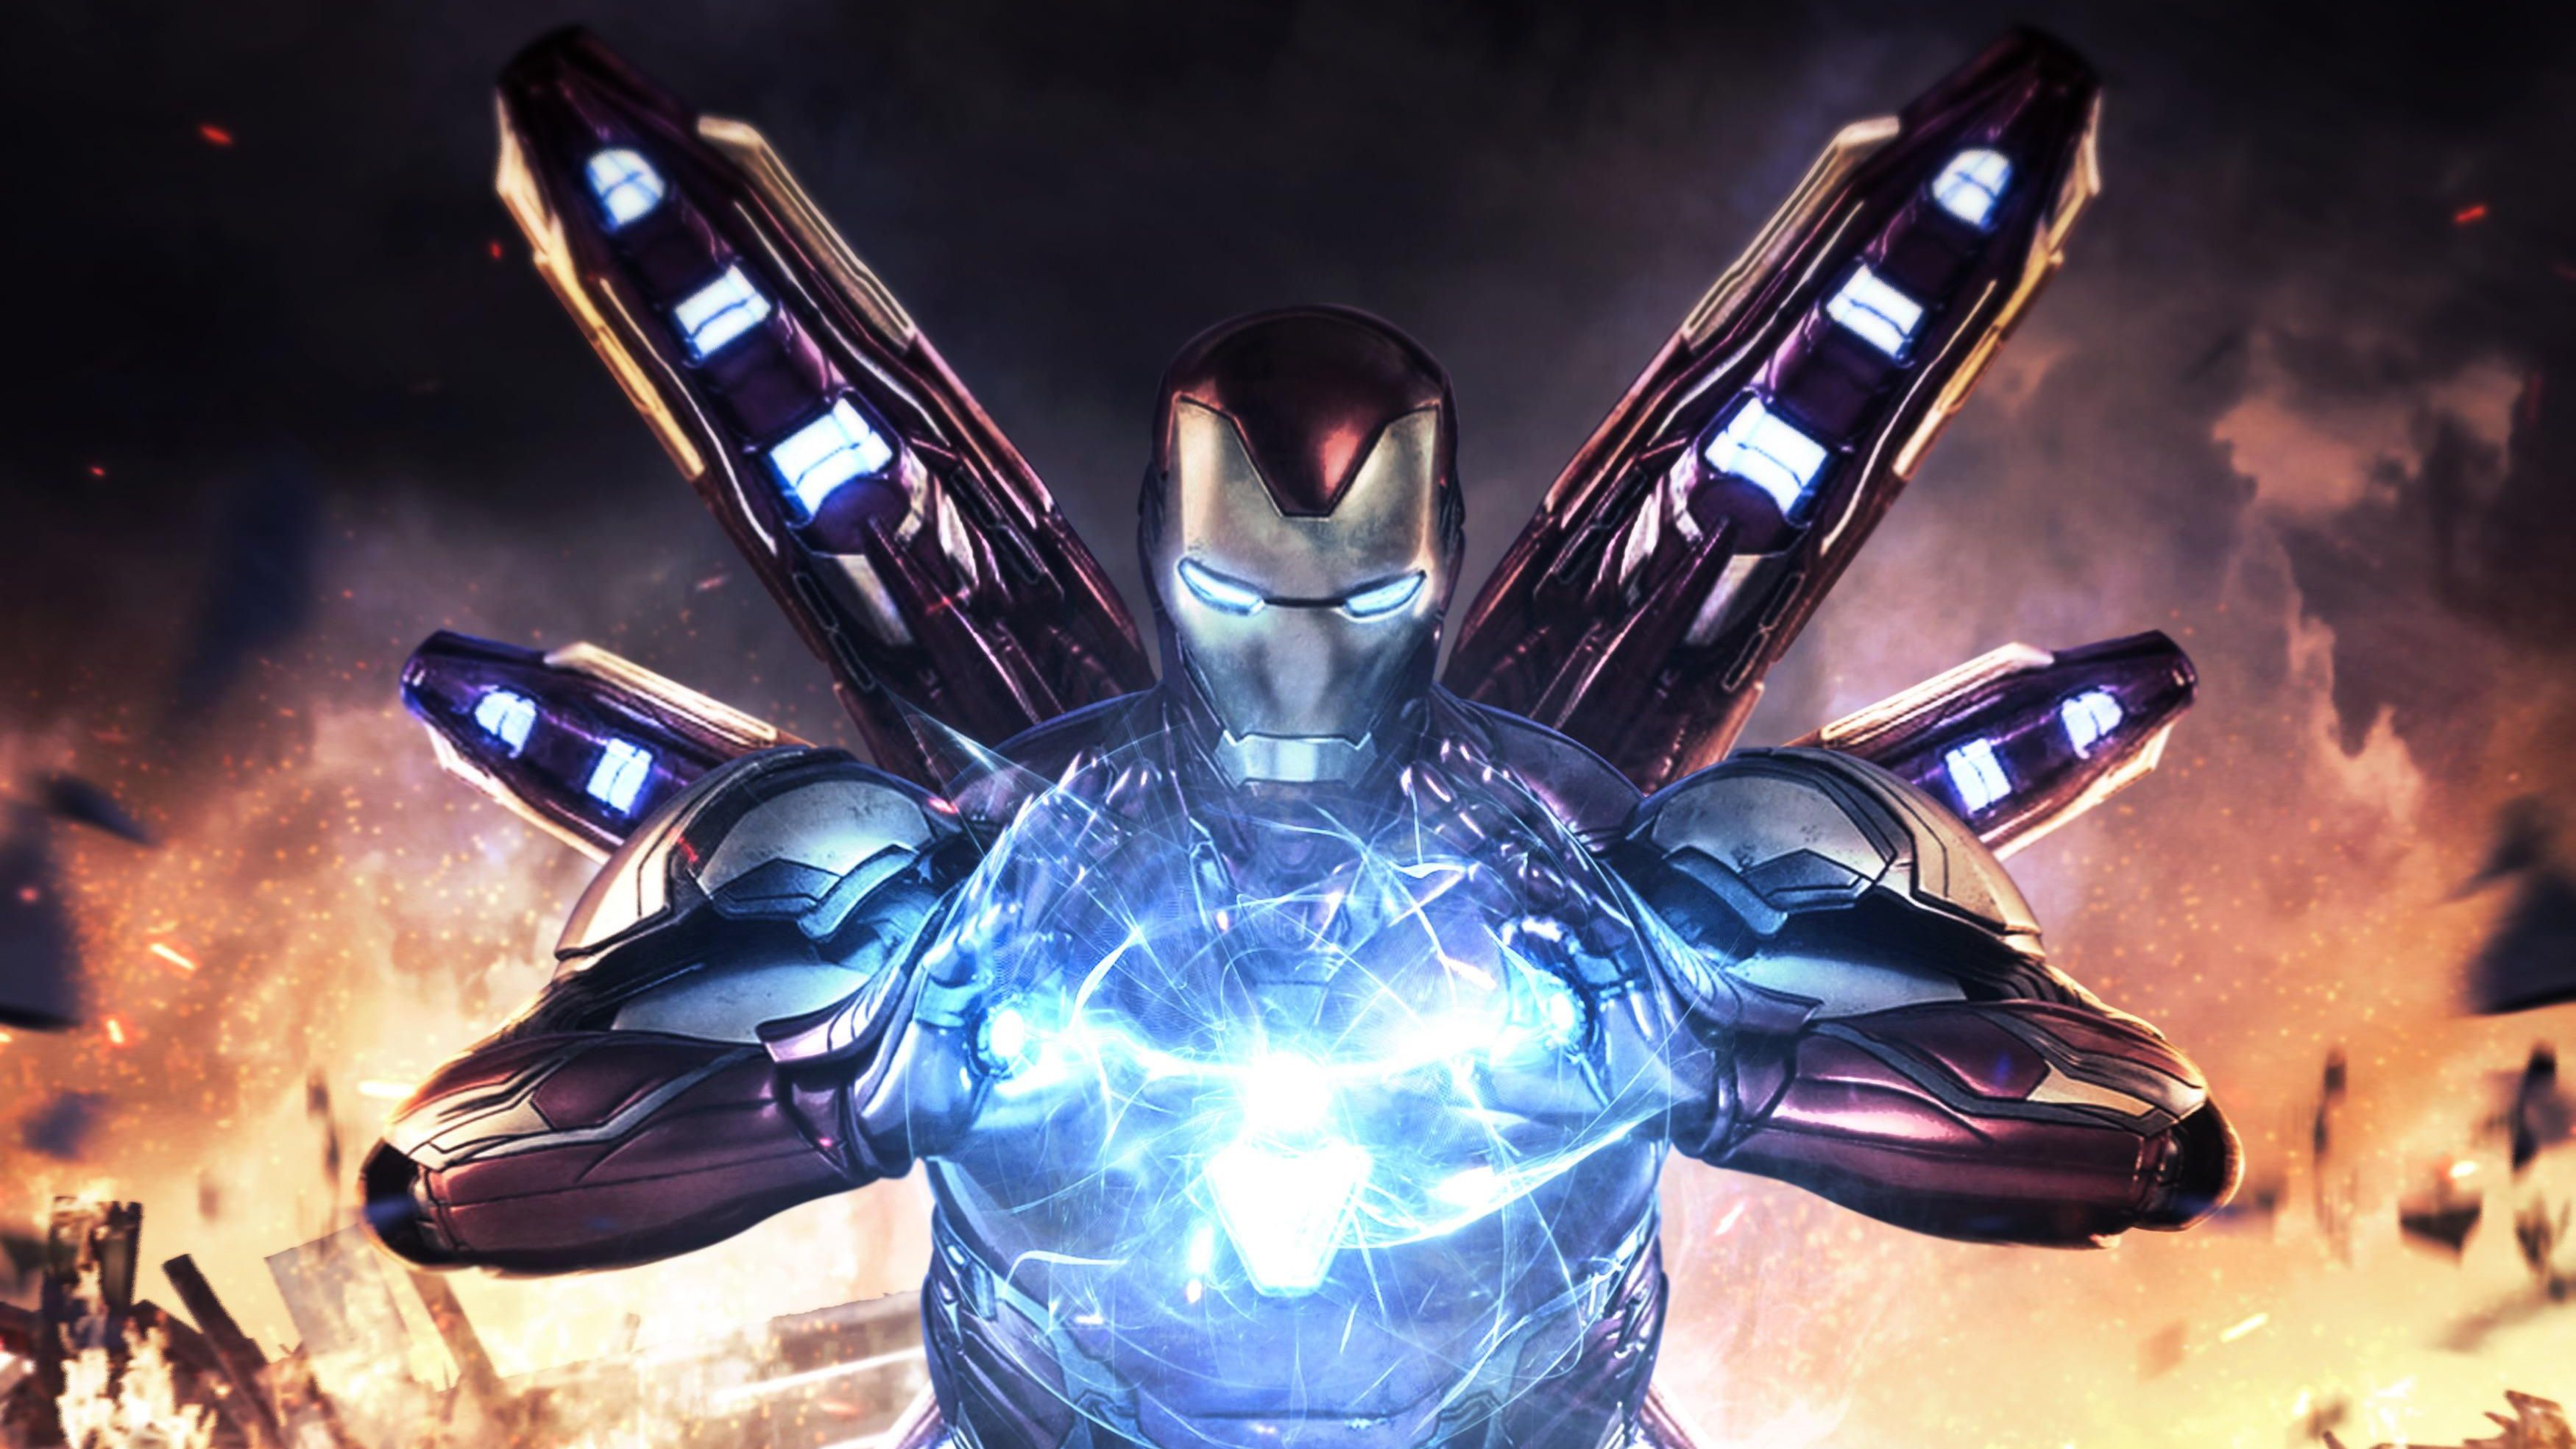 Iron Man Endgame Hd Wallpapers Top Free Iron Man Endgame Hd Backgrounds Wallpaperaccess